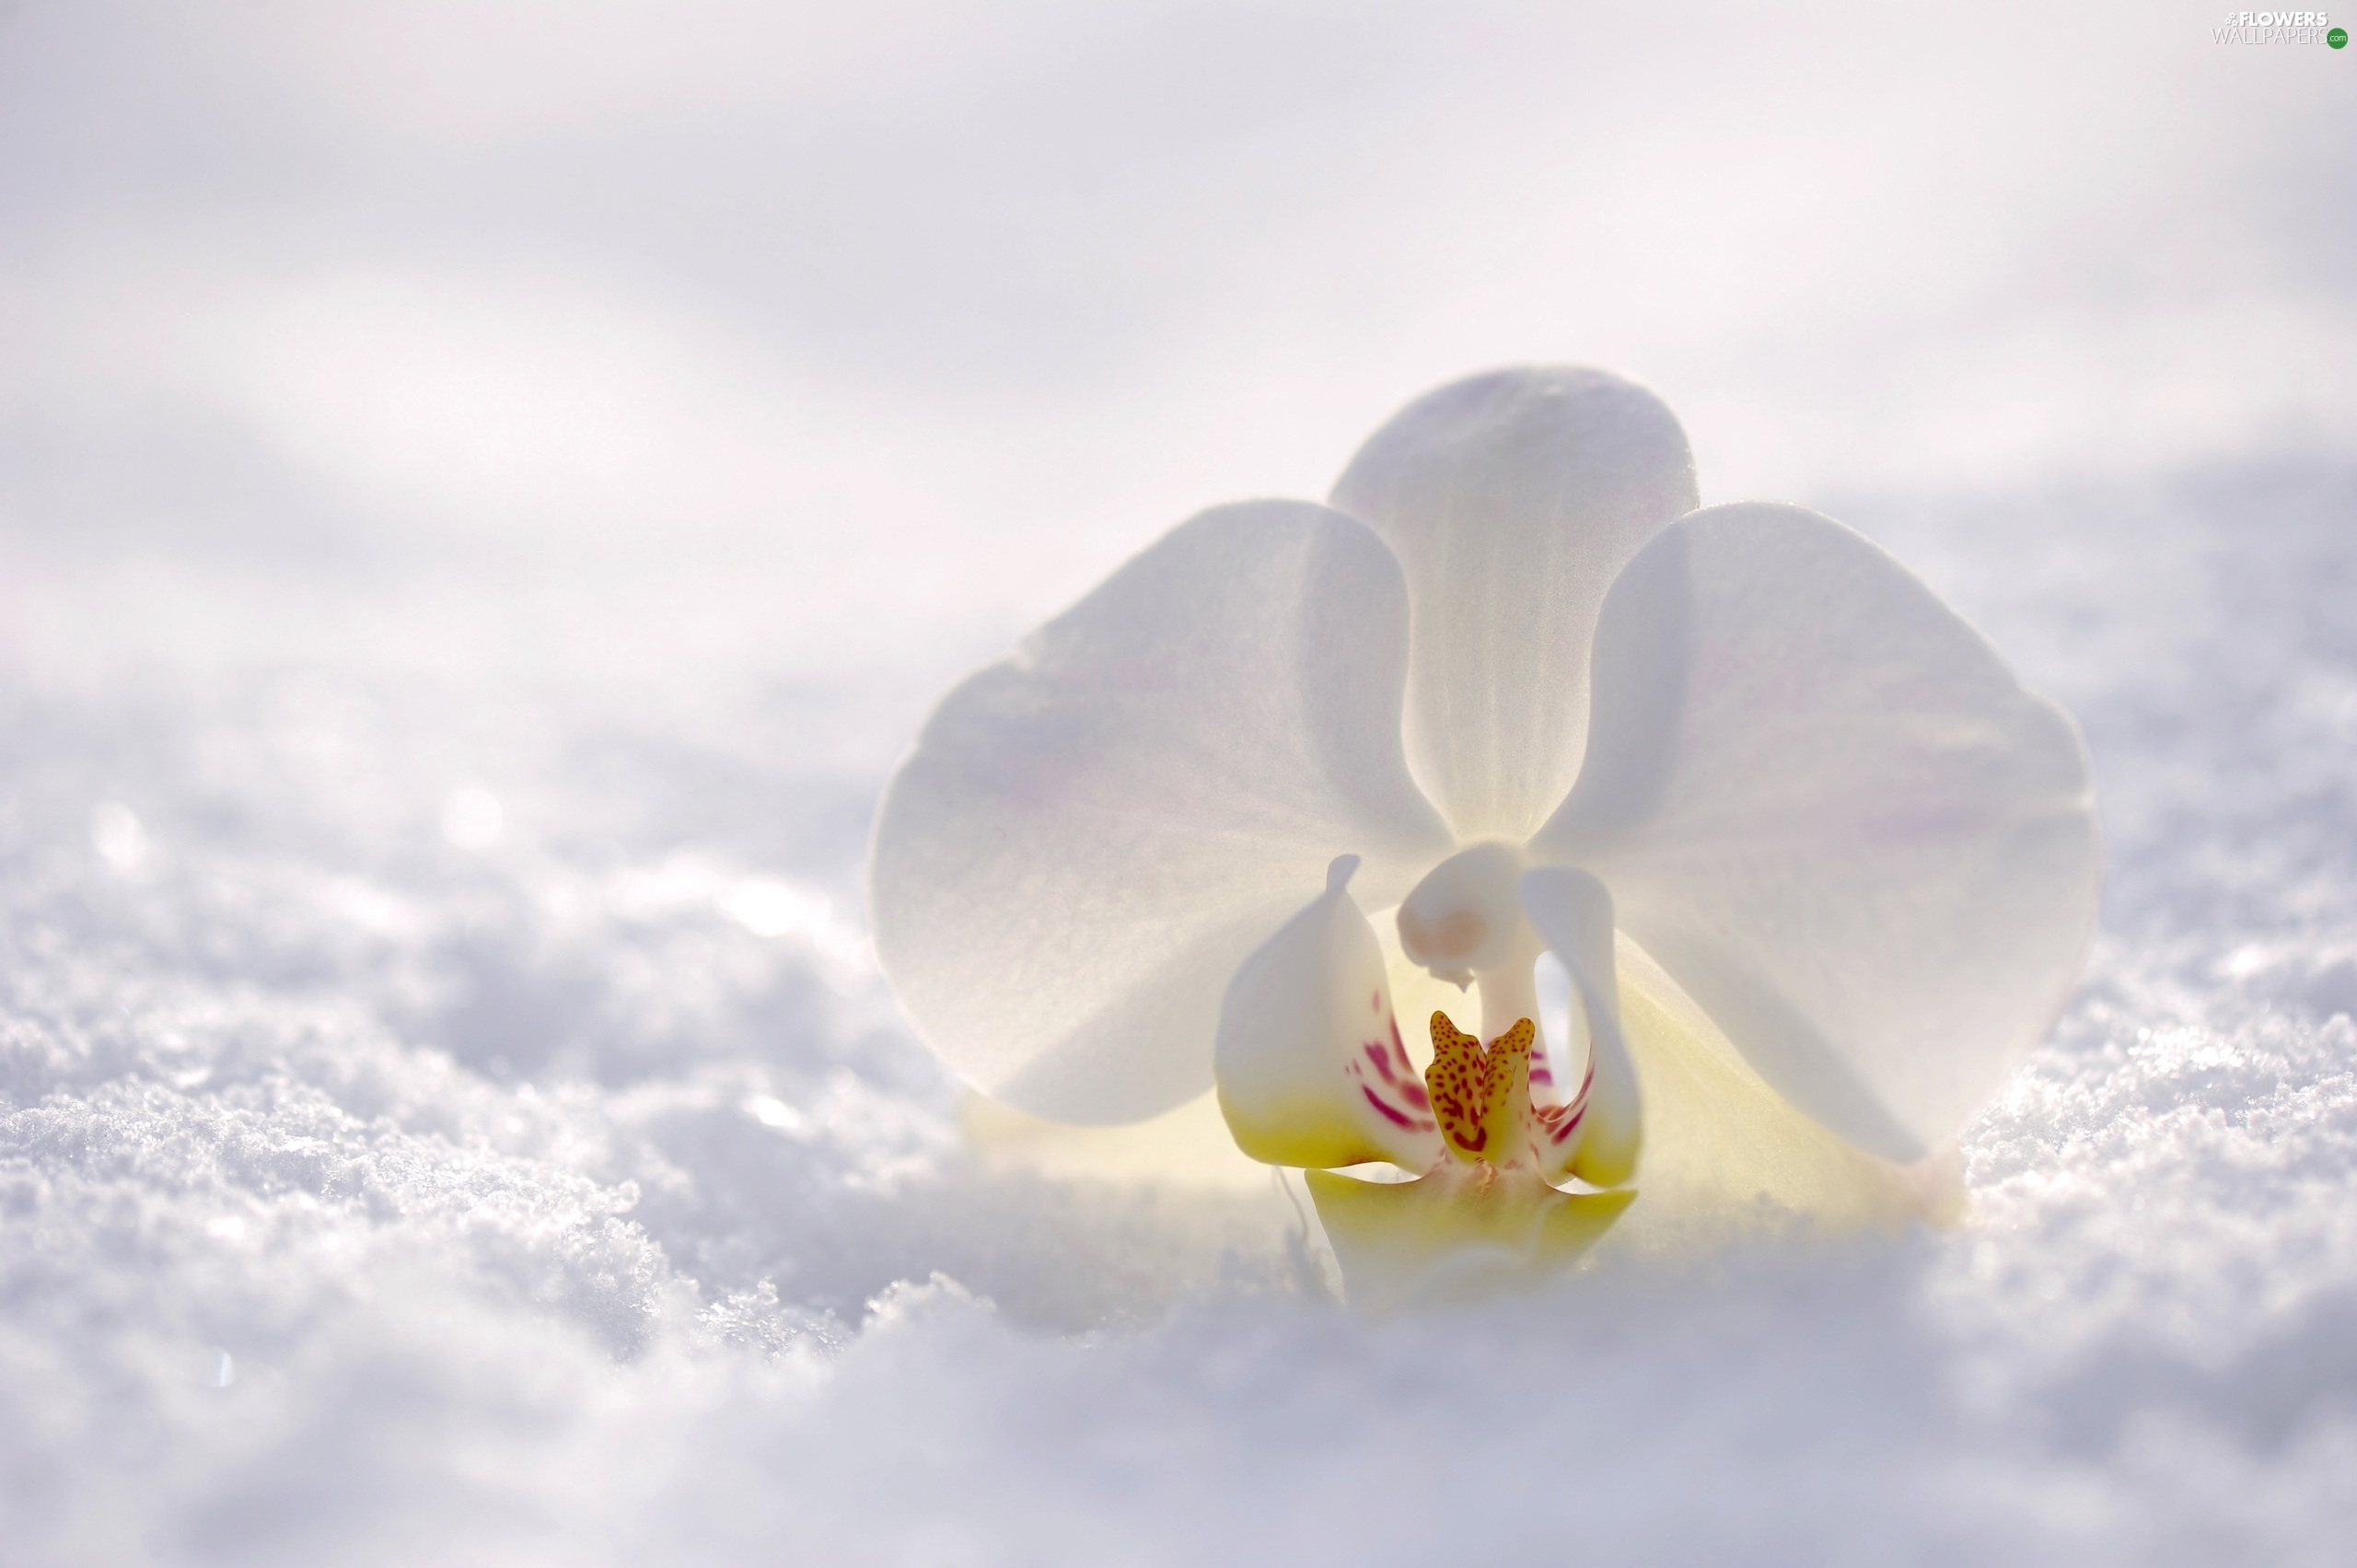 orchid, orchid, White, Colourfull Flowers, snow